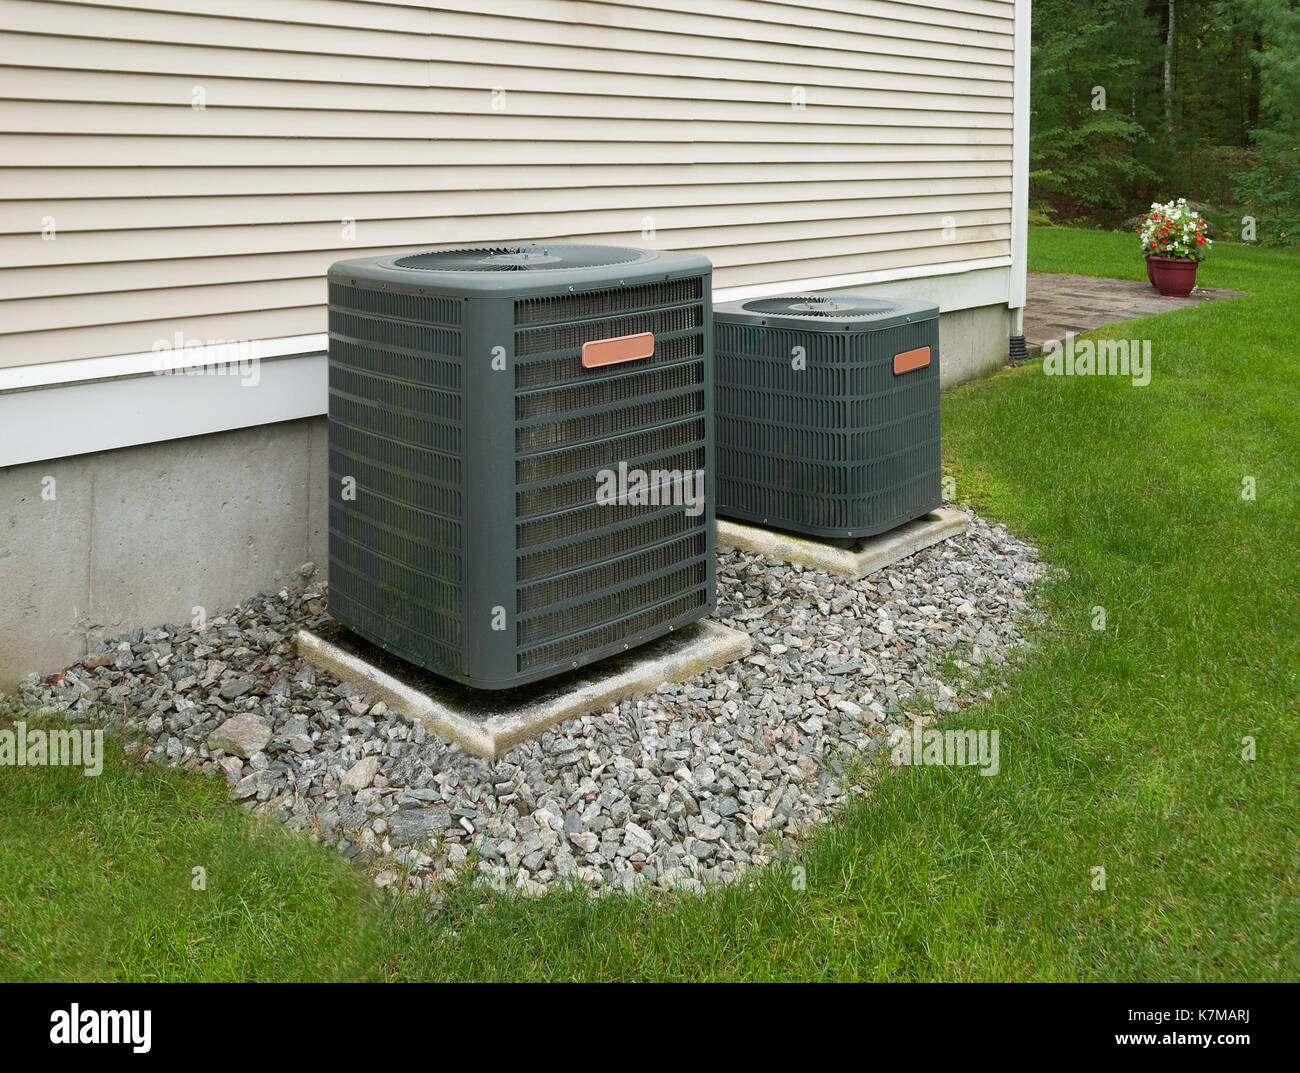 Apartment Heating And Cooling Units : Air conditioning unit compressor stock photos